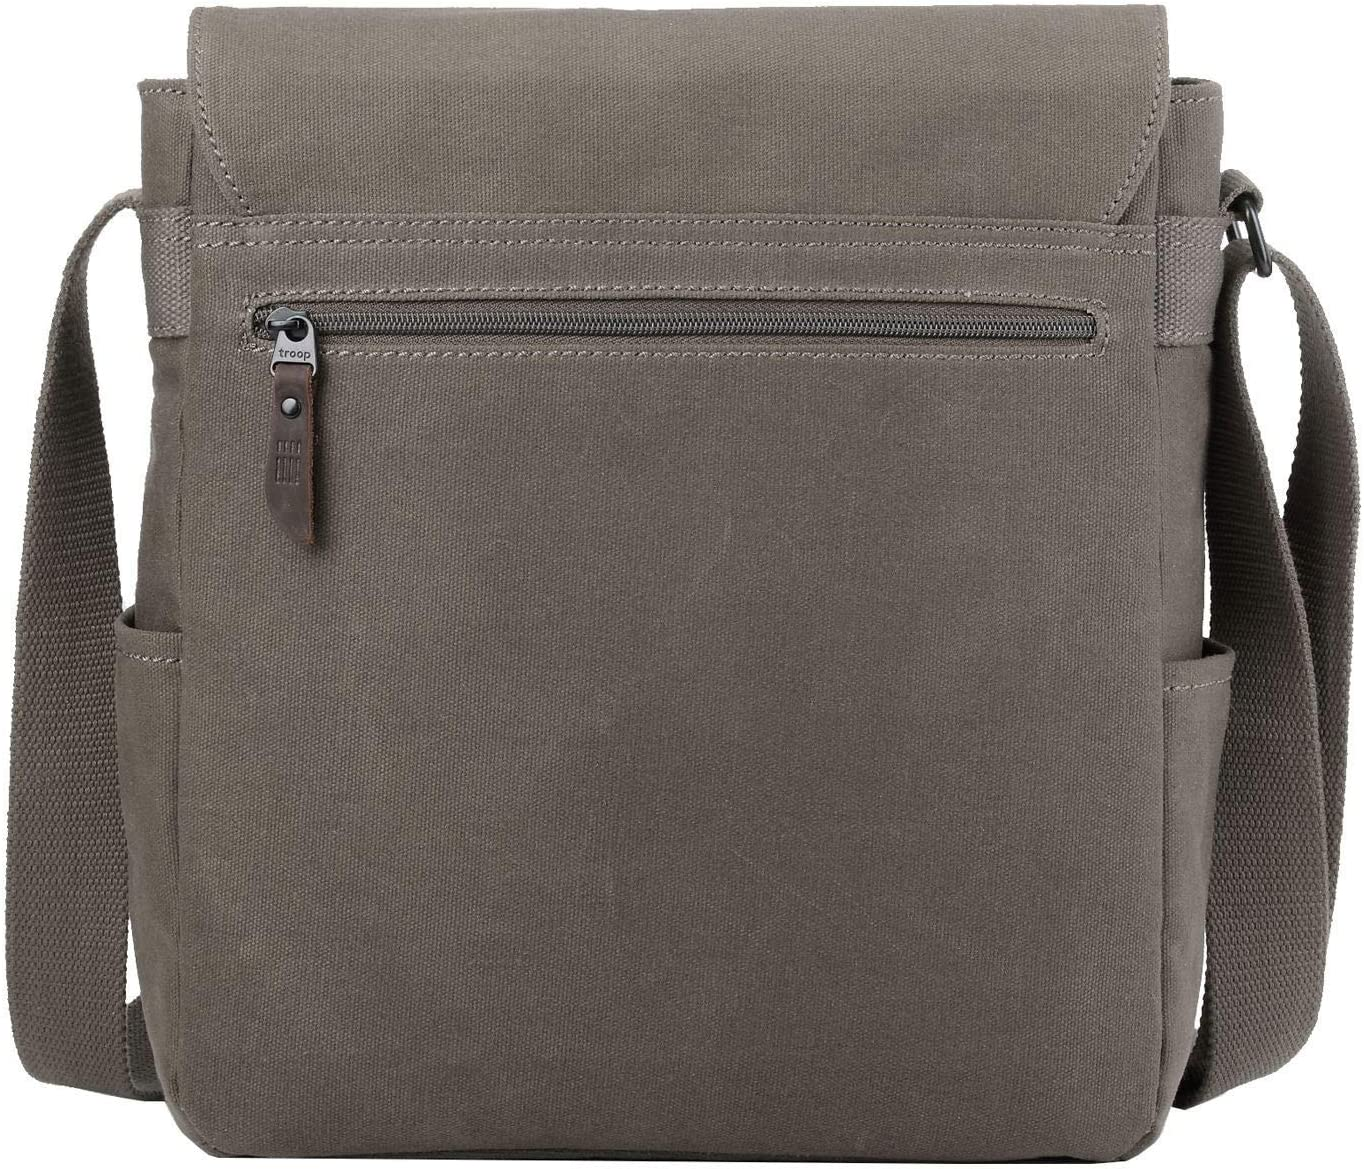 Canvas Bag for Travel and Work ║H32 X W30 X D15CM Tablet Friendly TRP0490 Troop London Heritage Canvas Leather Messenger Bag